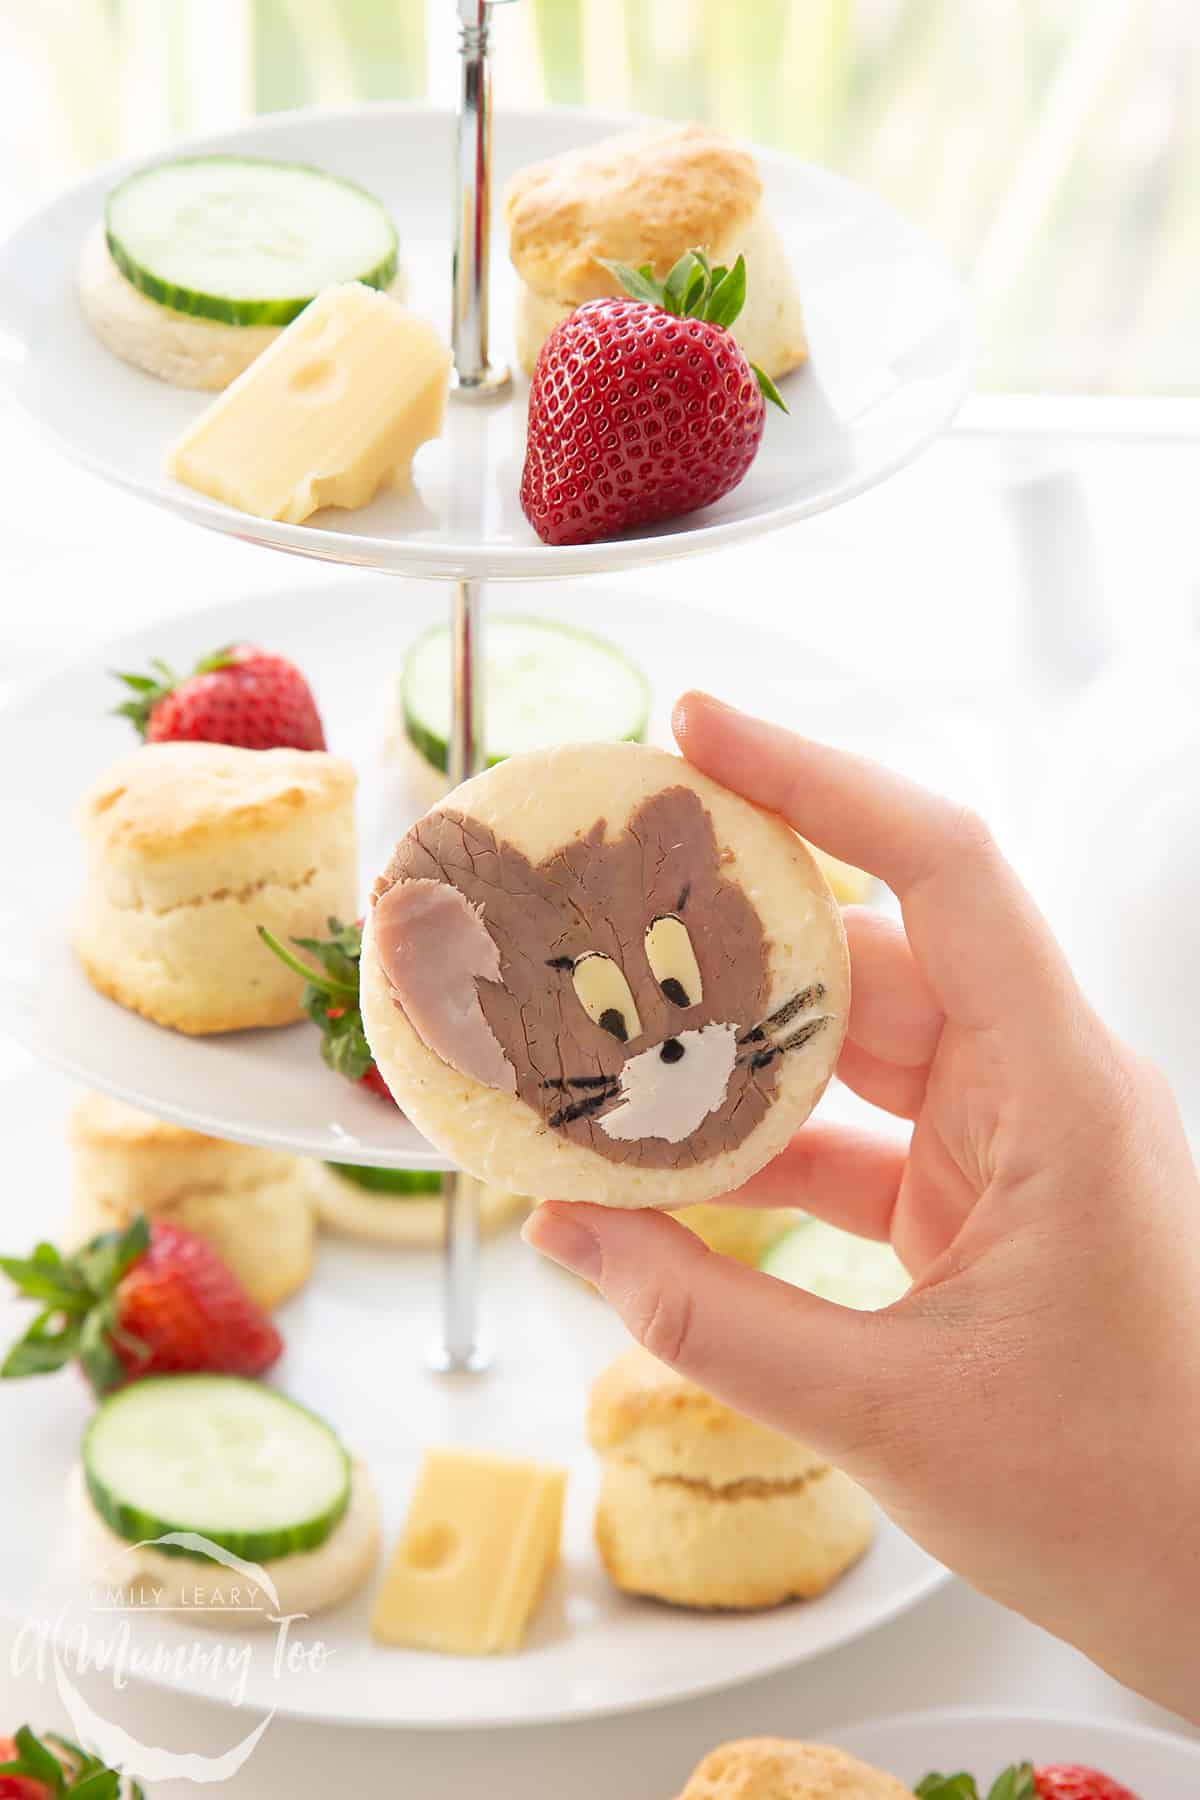 Hand holding up one of the Tom and Jerry sandwhiches with a cake stand filled with Tom and Jerry afternoon tea essentials in the background.